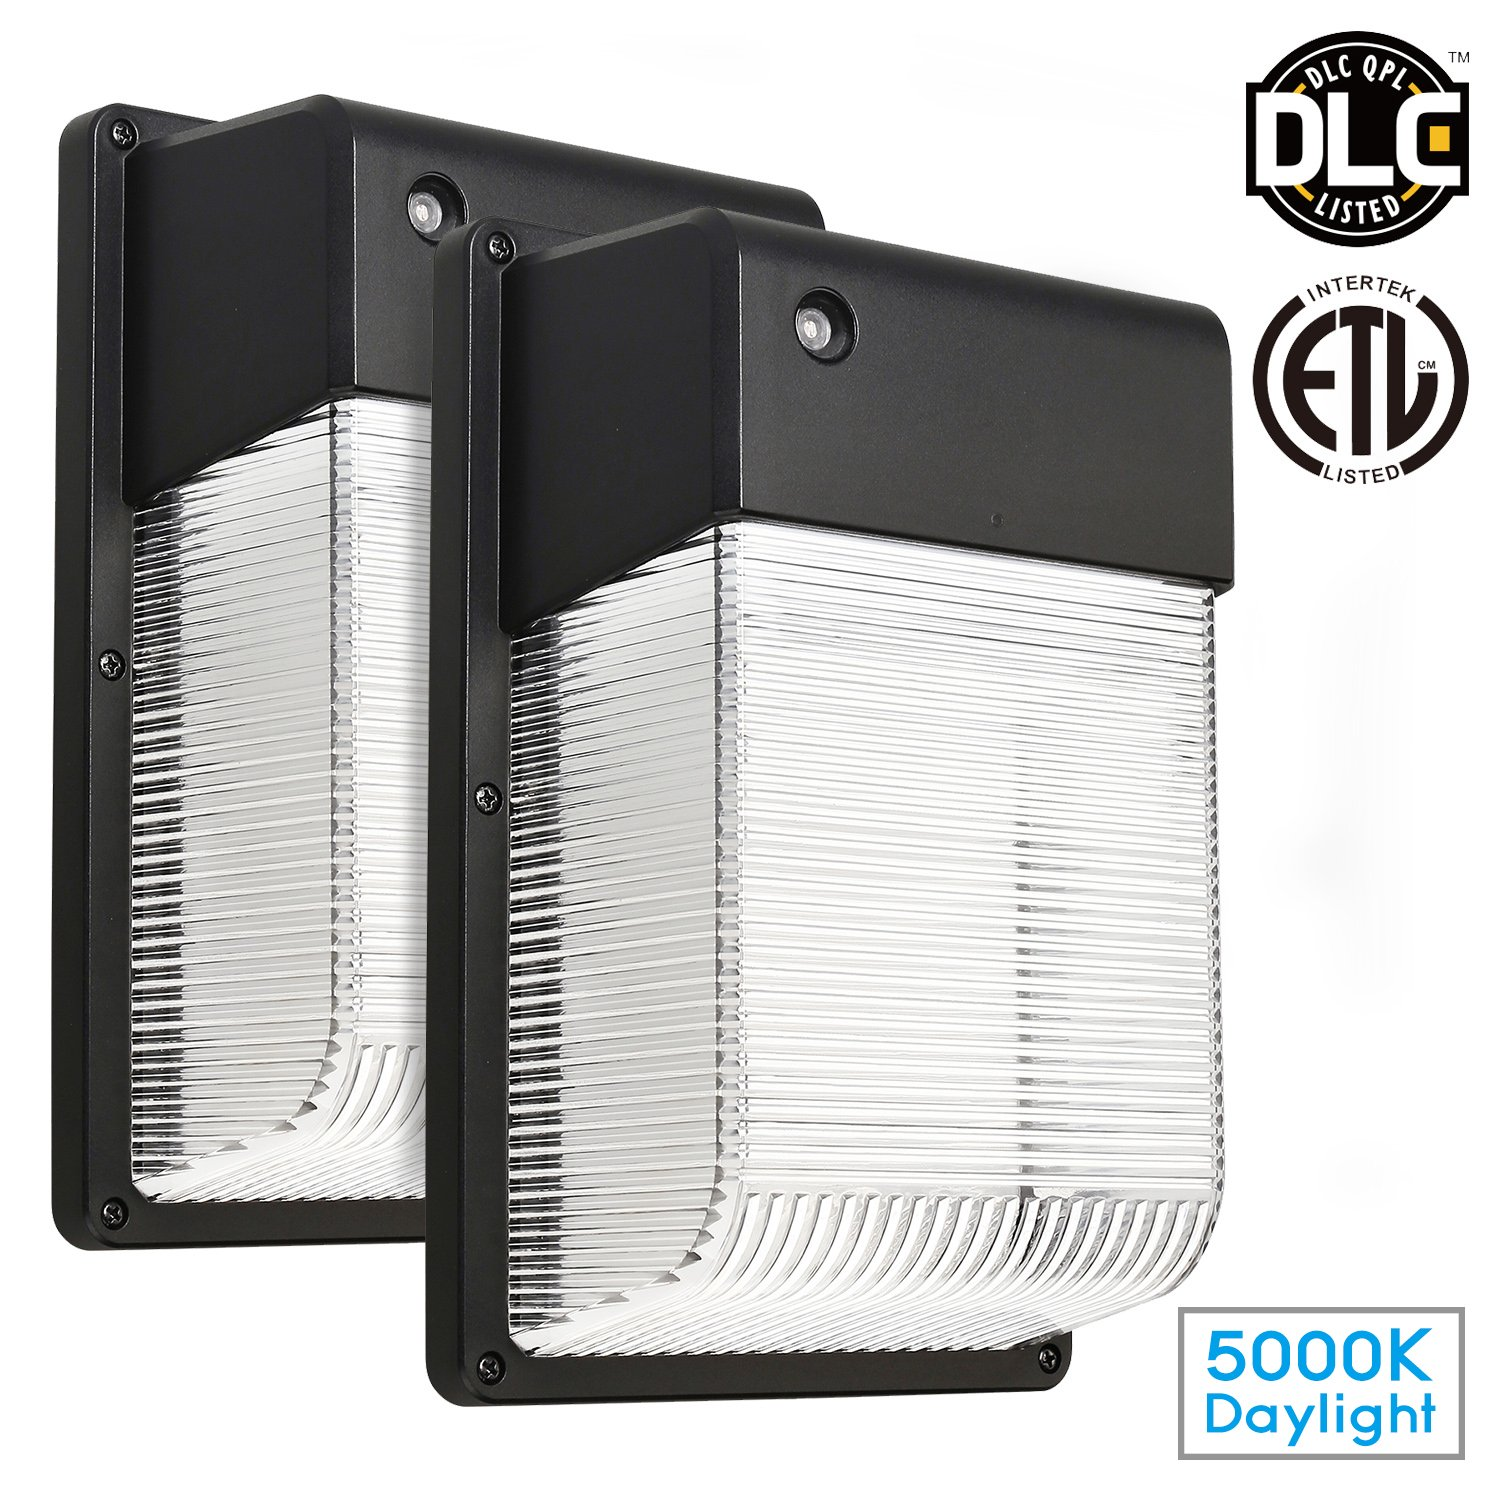 2 pack 16w dusk to dawn led wall pack photocell outdoor led wall mount light ebay. Black Bedroom Furniture Sets. Home Design Ideas